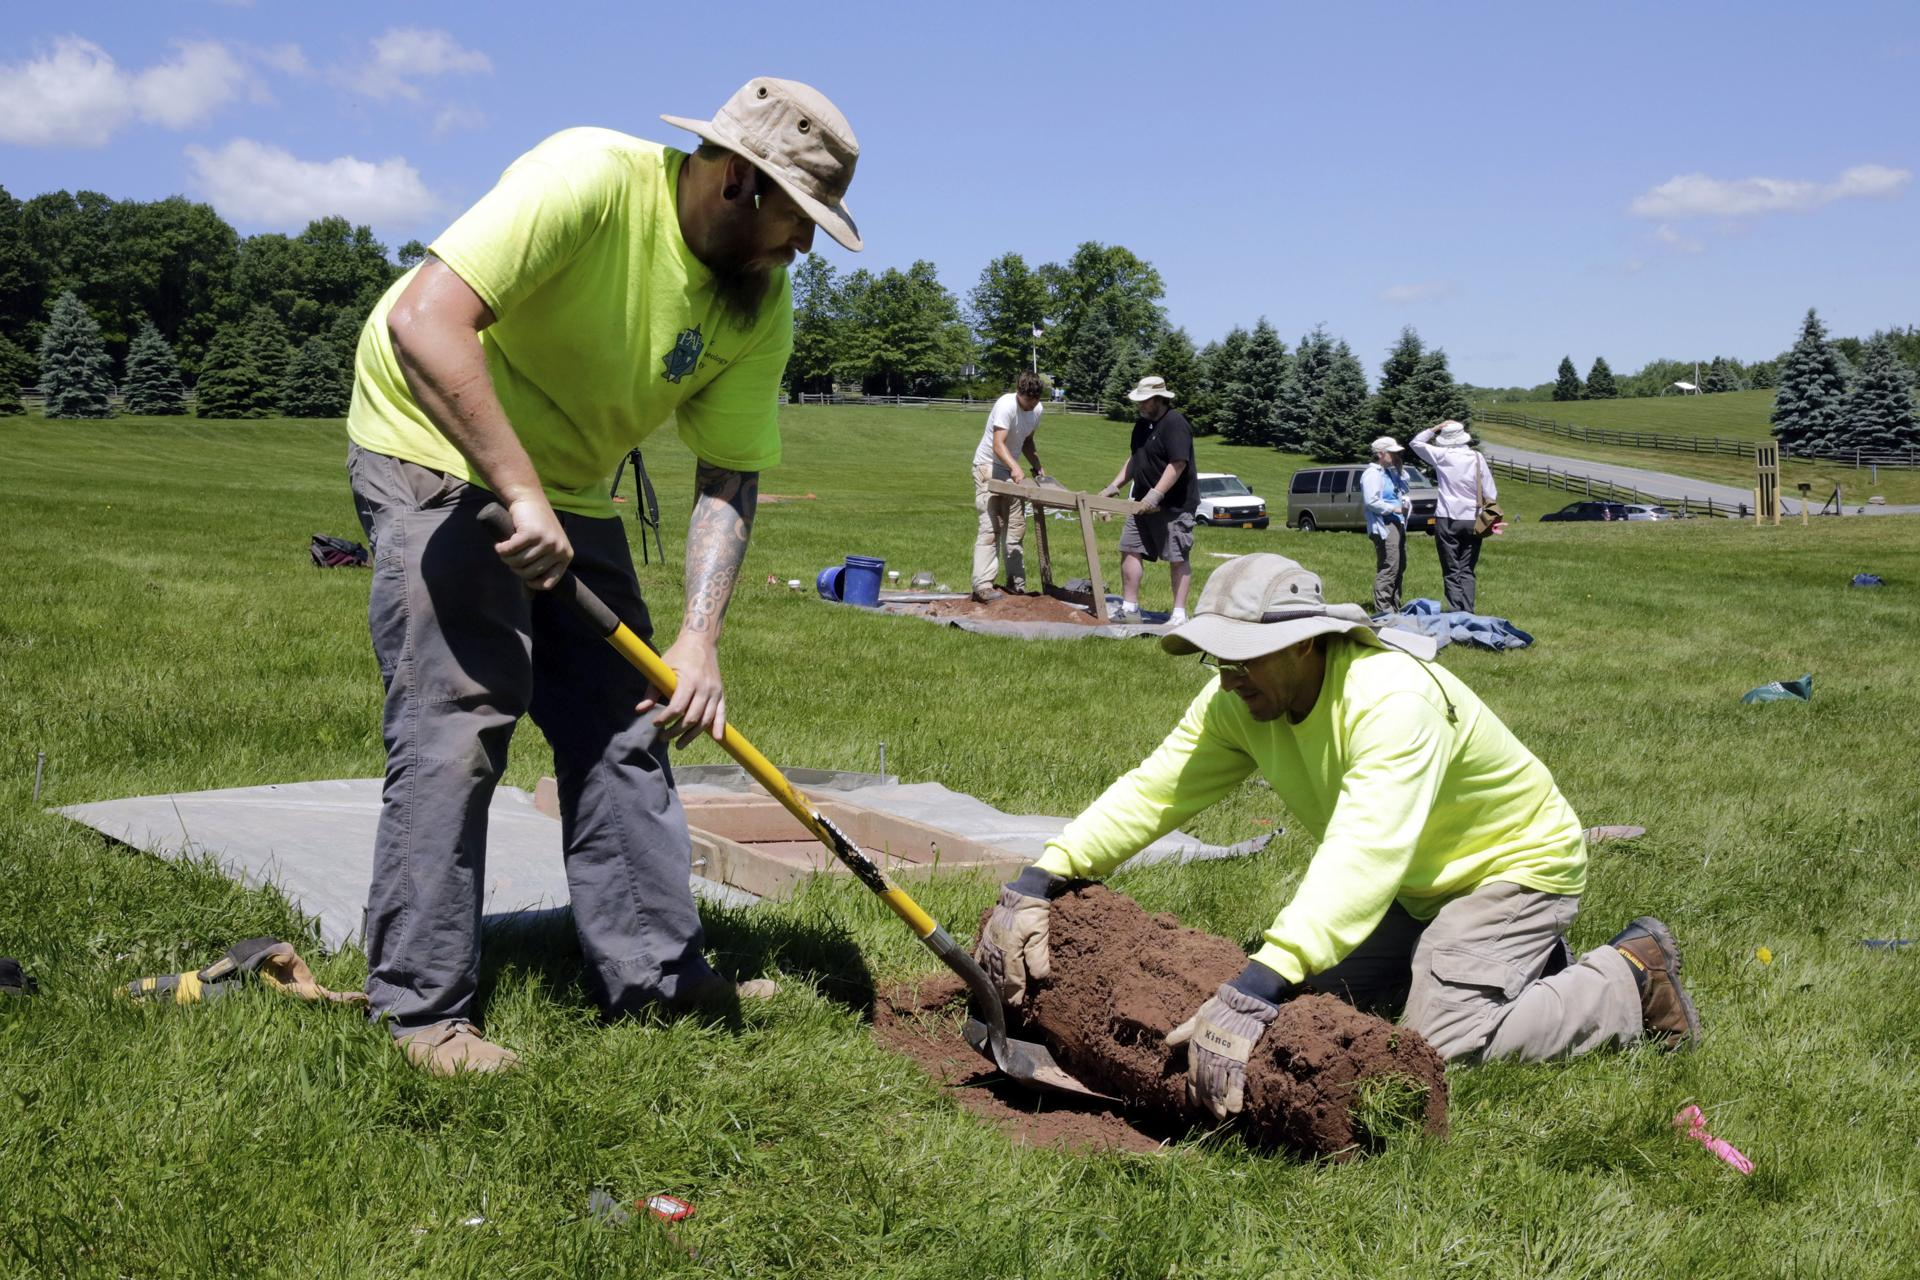 a41b97654b5 Archeologists started a new dig at the site of the original Woodstock Music  and Art Fair